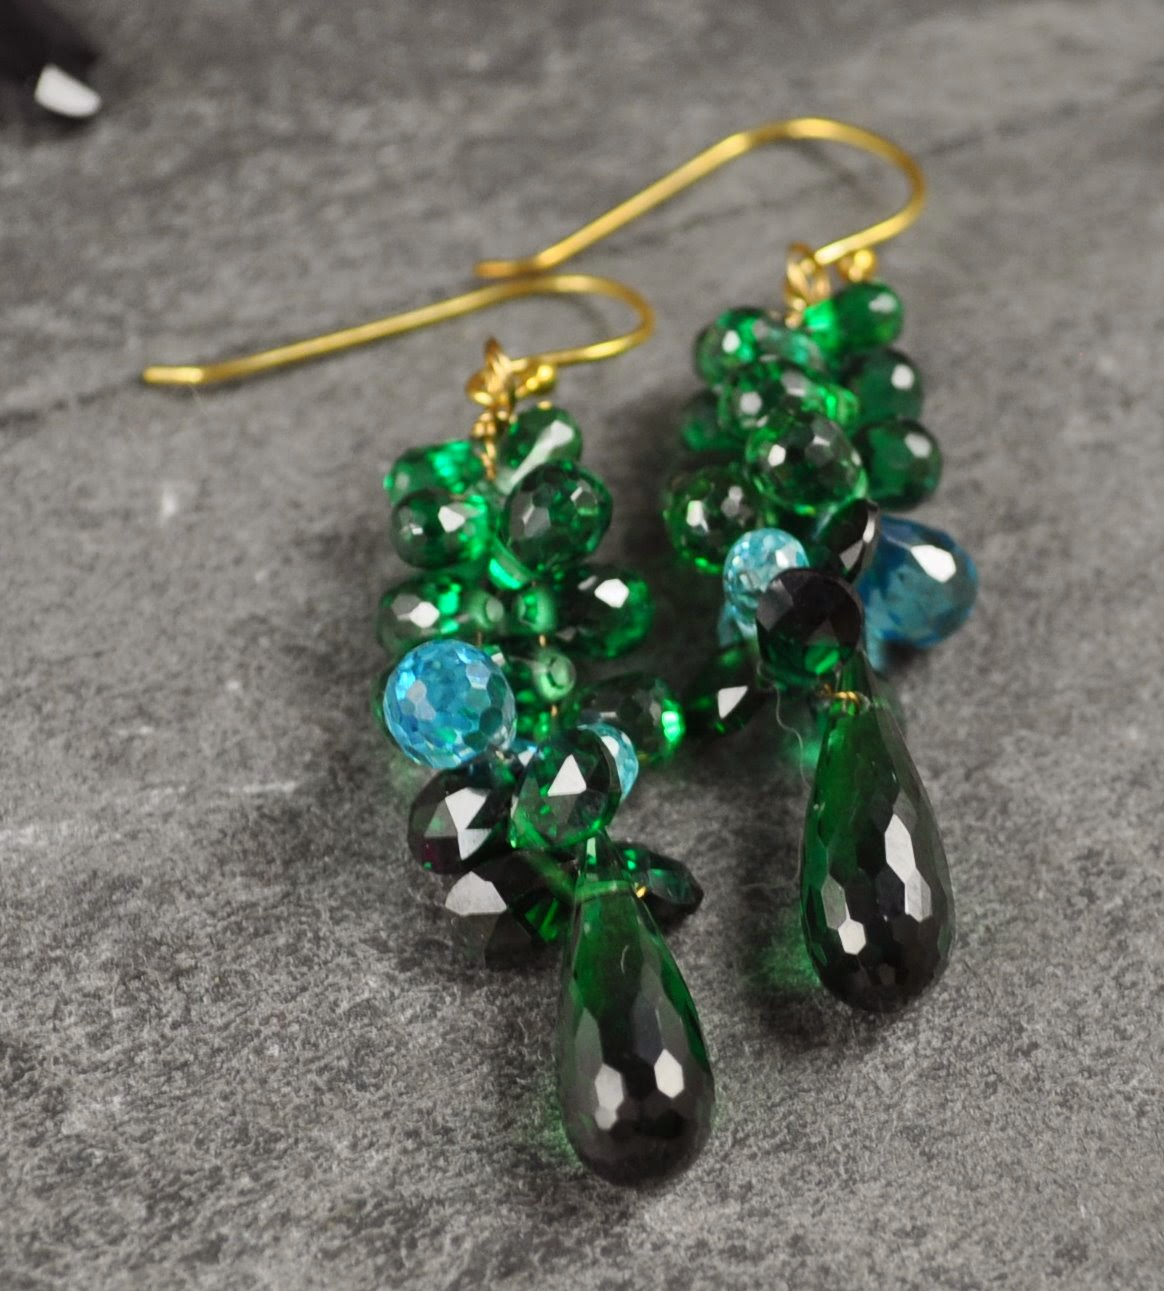 The Beadful Life @ BeadFX: Cluster Drops - A new way to make earrings